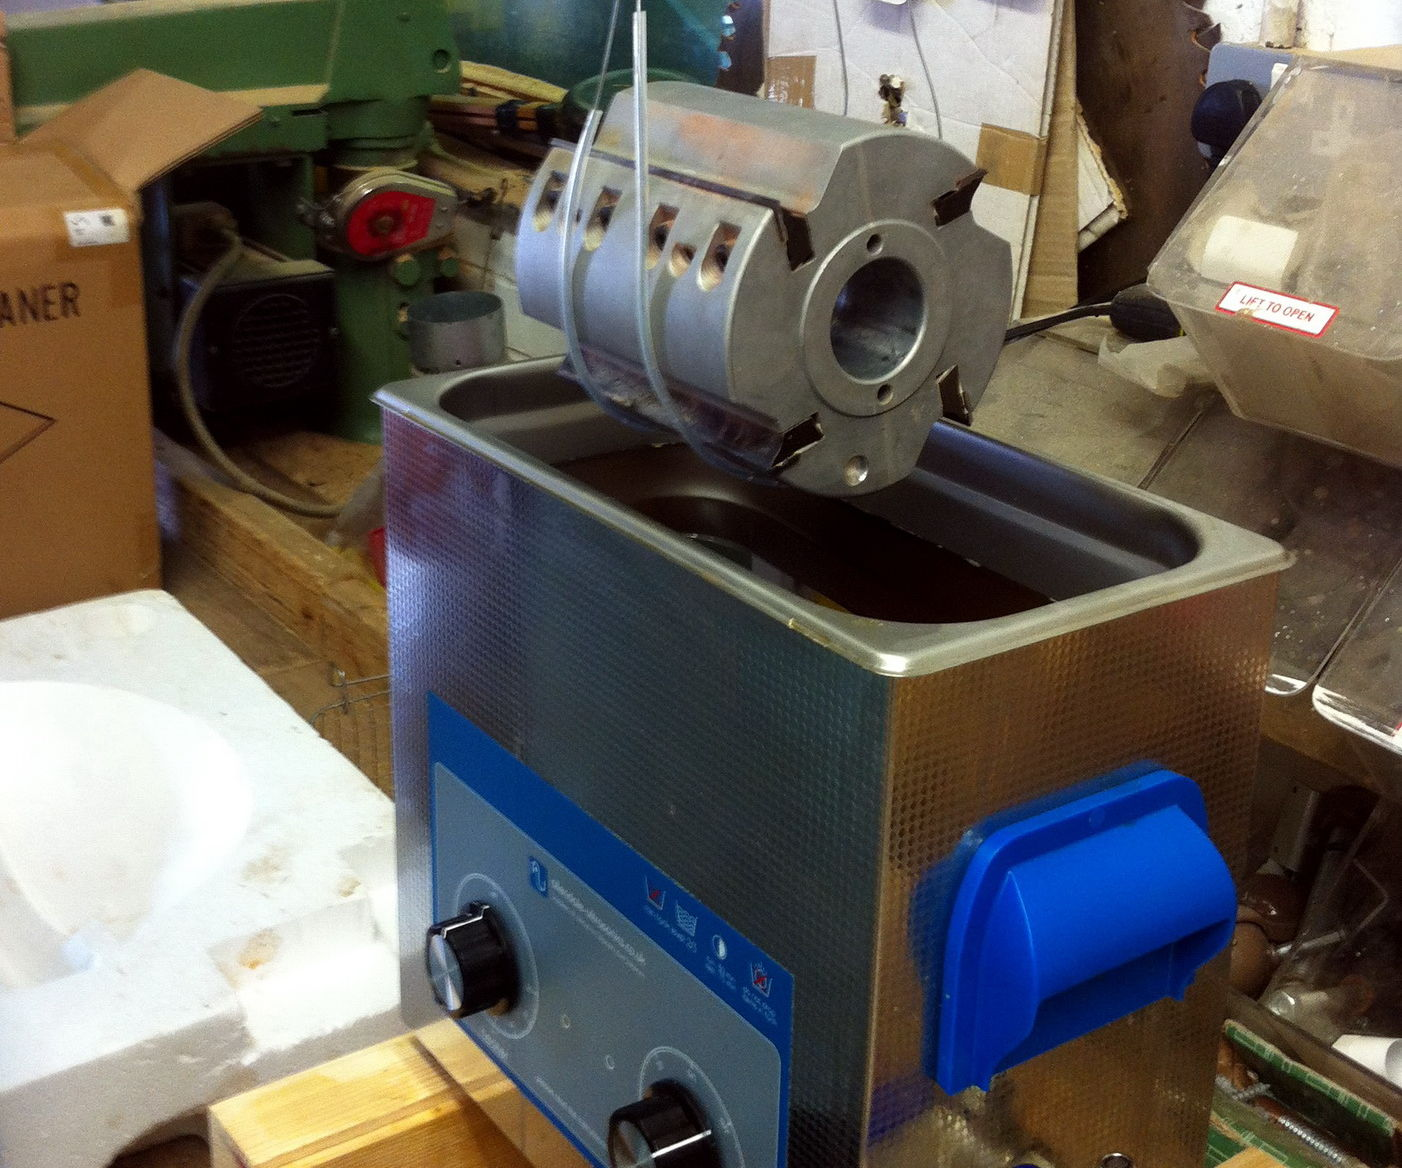 Clean Resin From Woodworking Routers & Tools in an Ultrasonic Cleaner